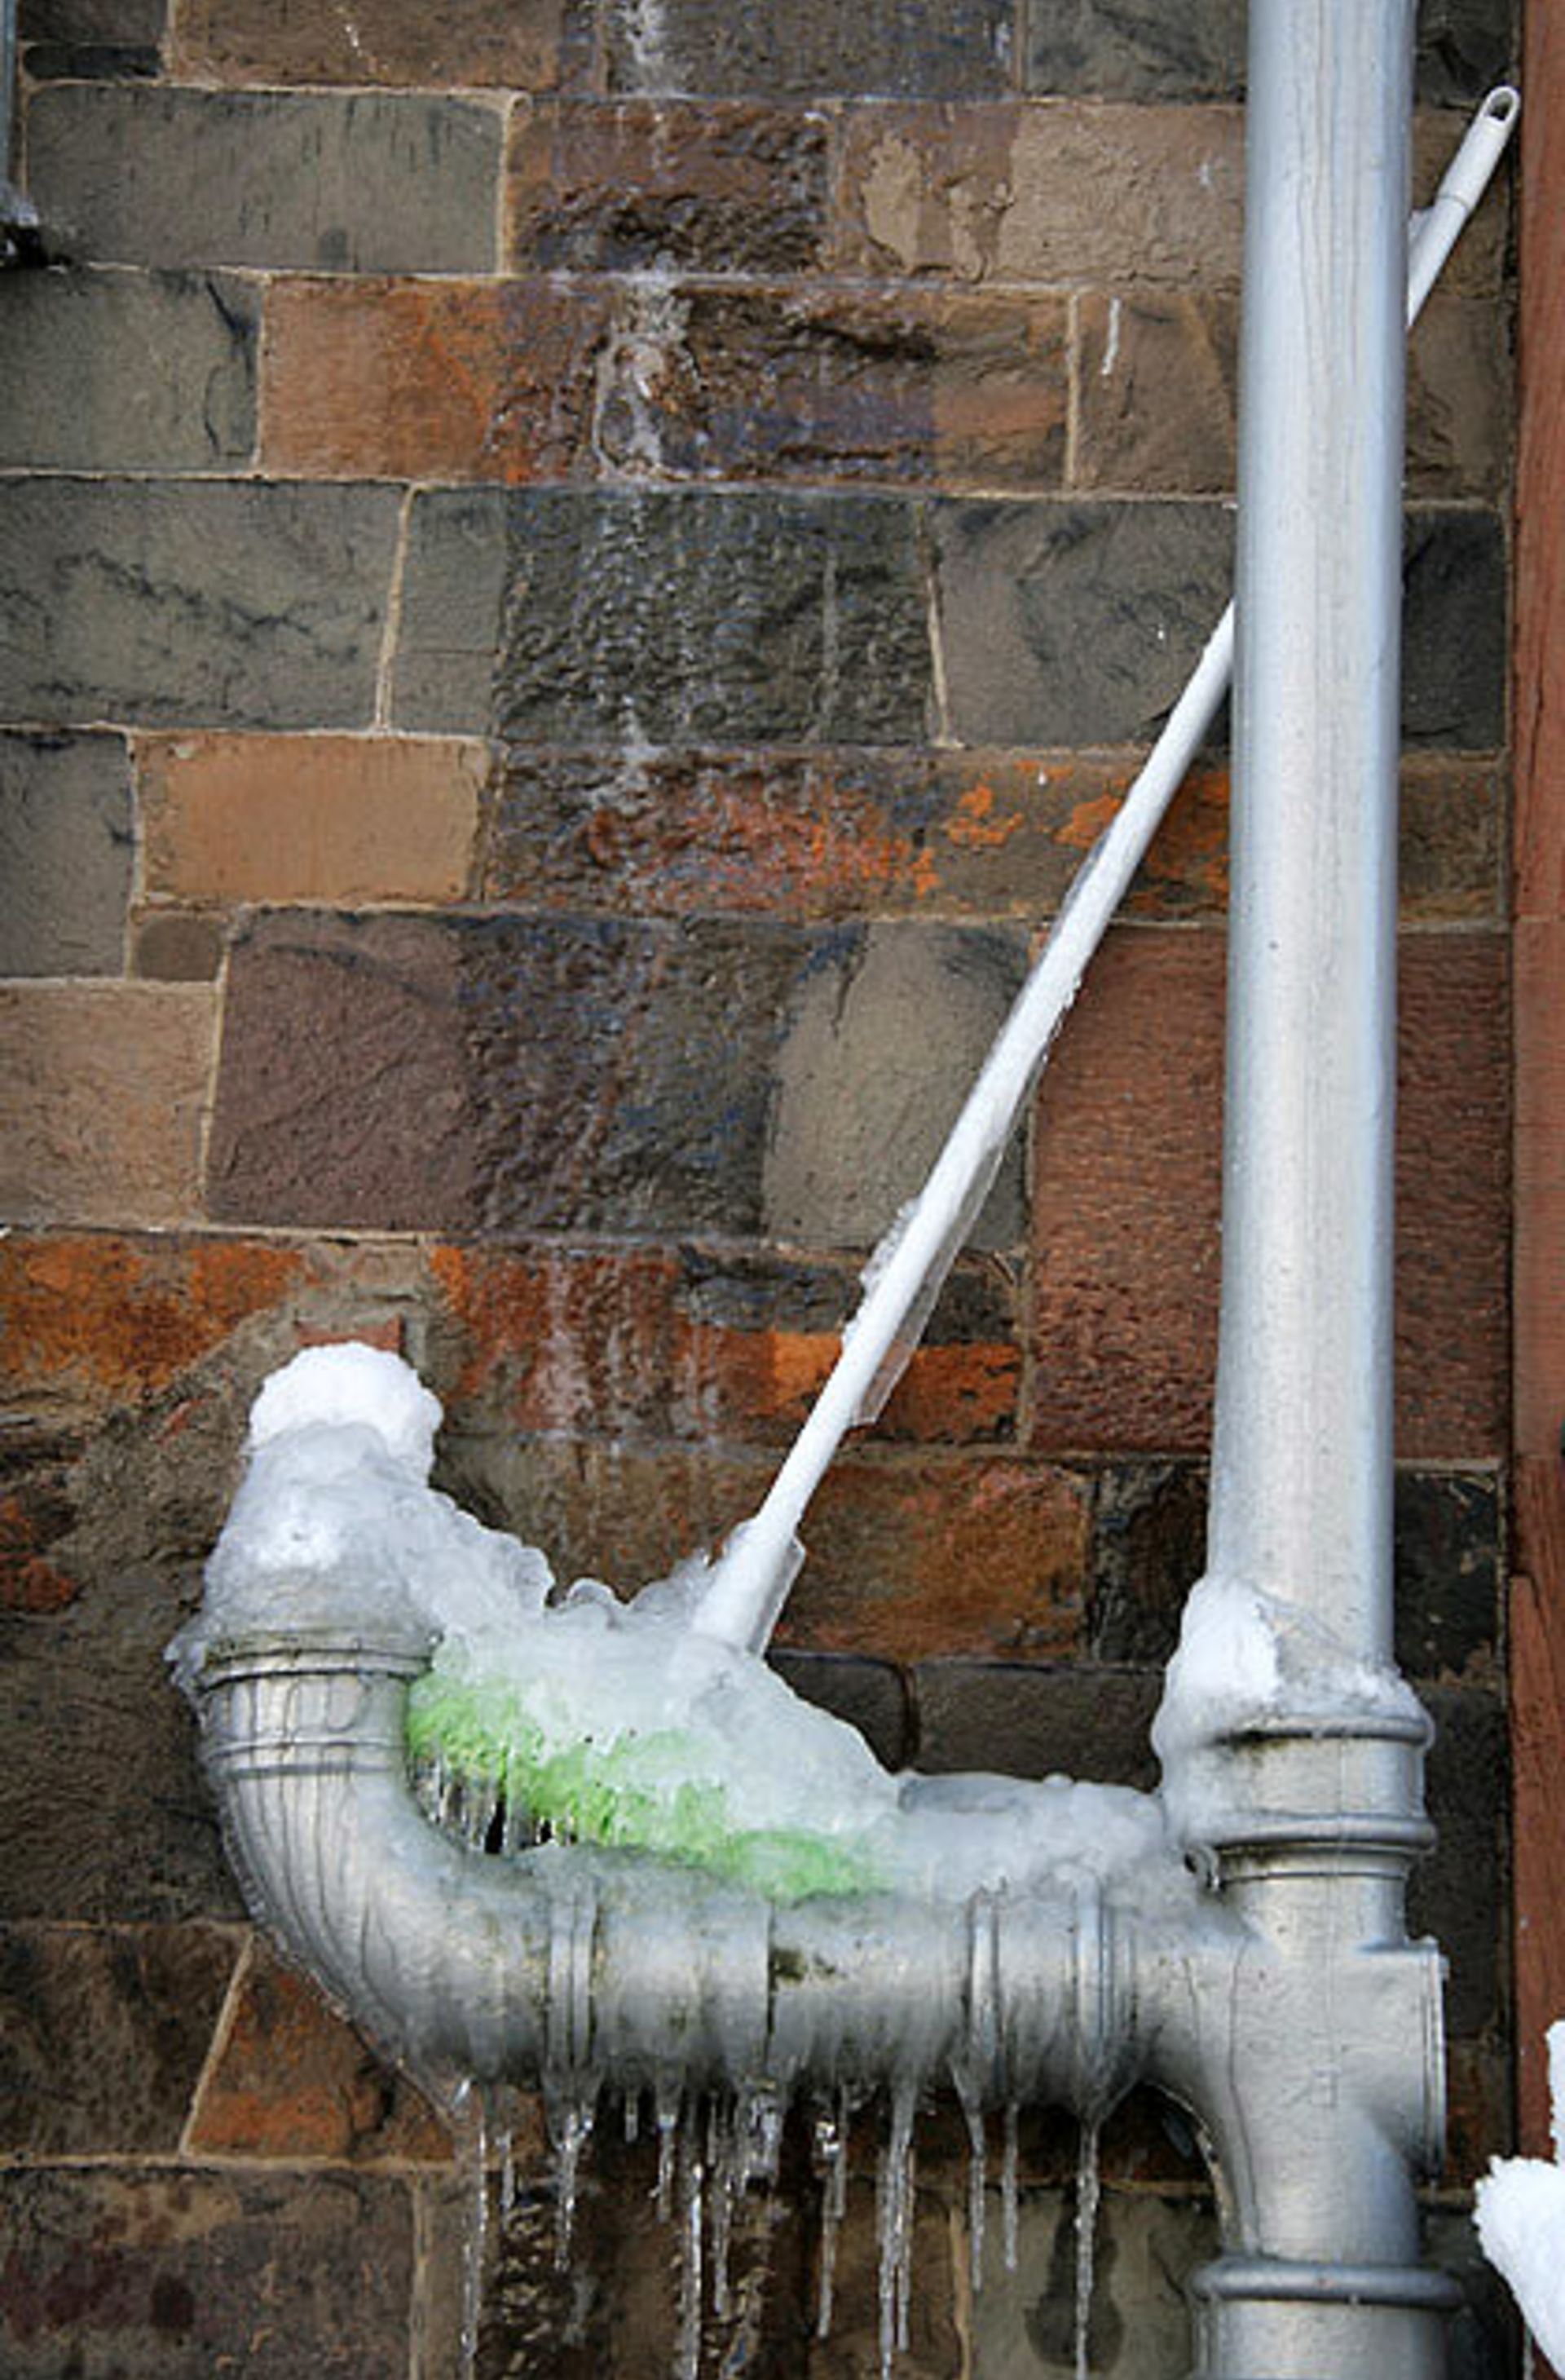 Winterizing Your Home – Preventing Frozen Pipes